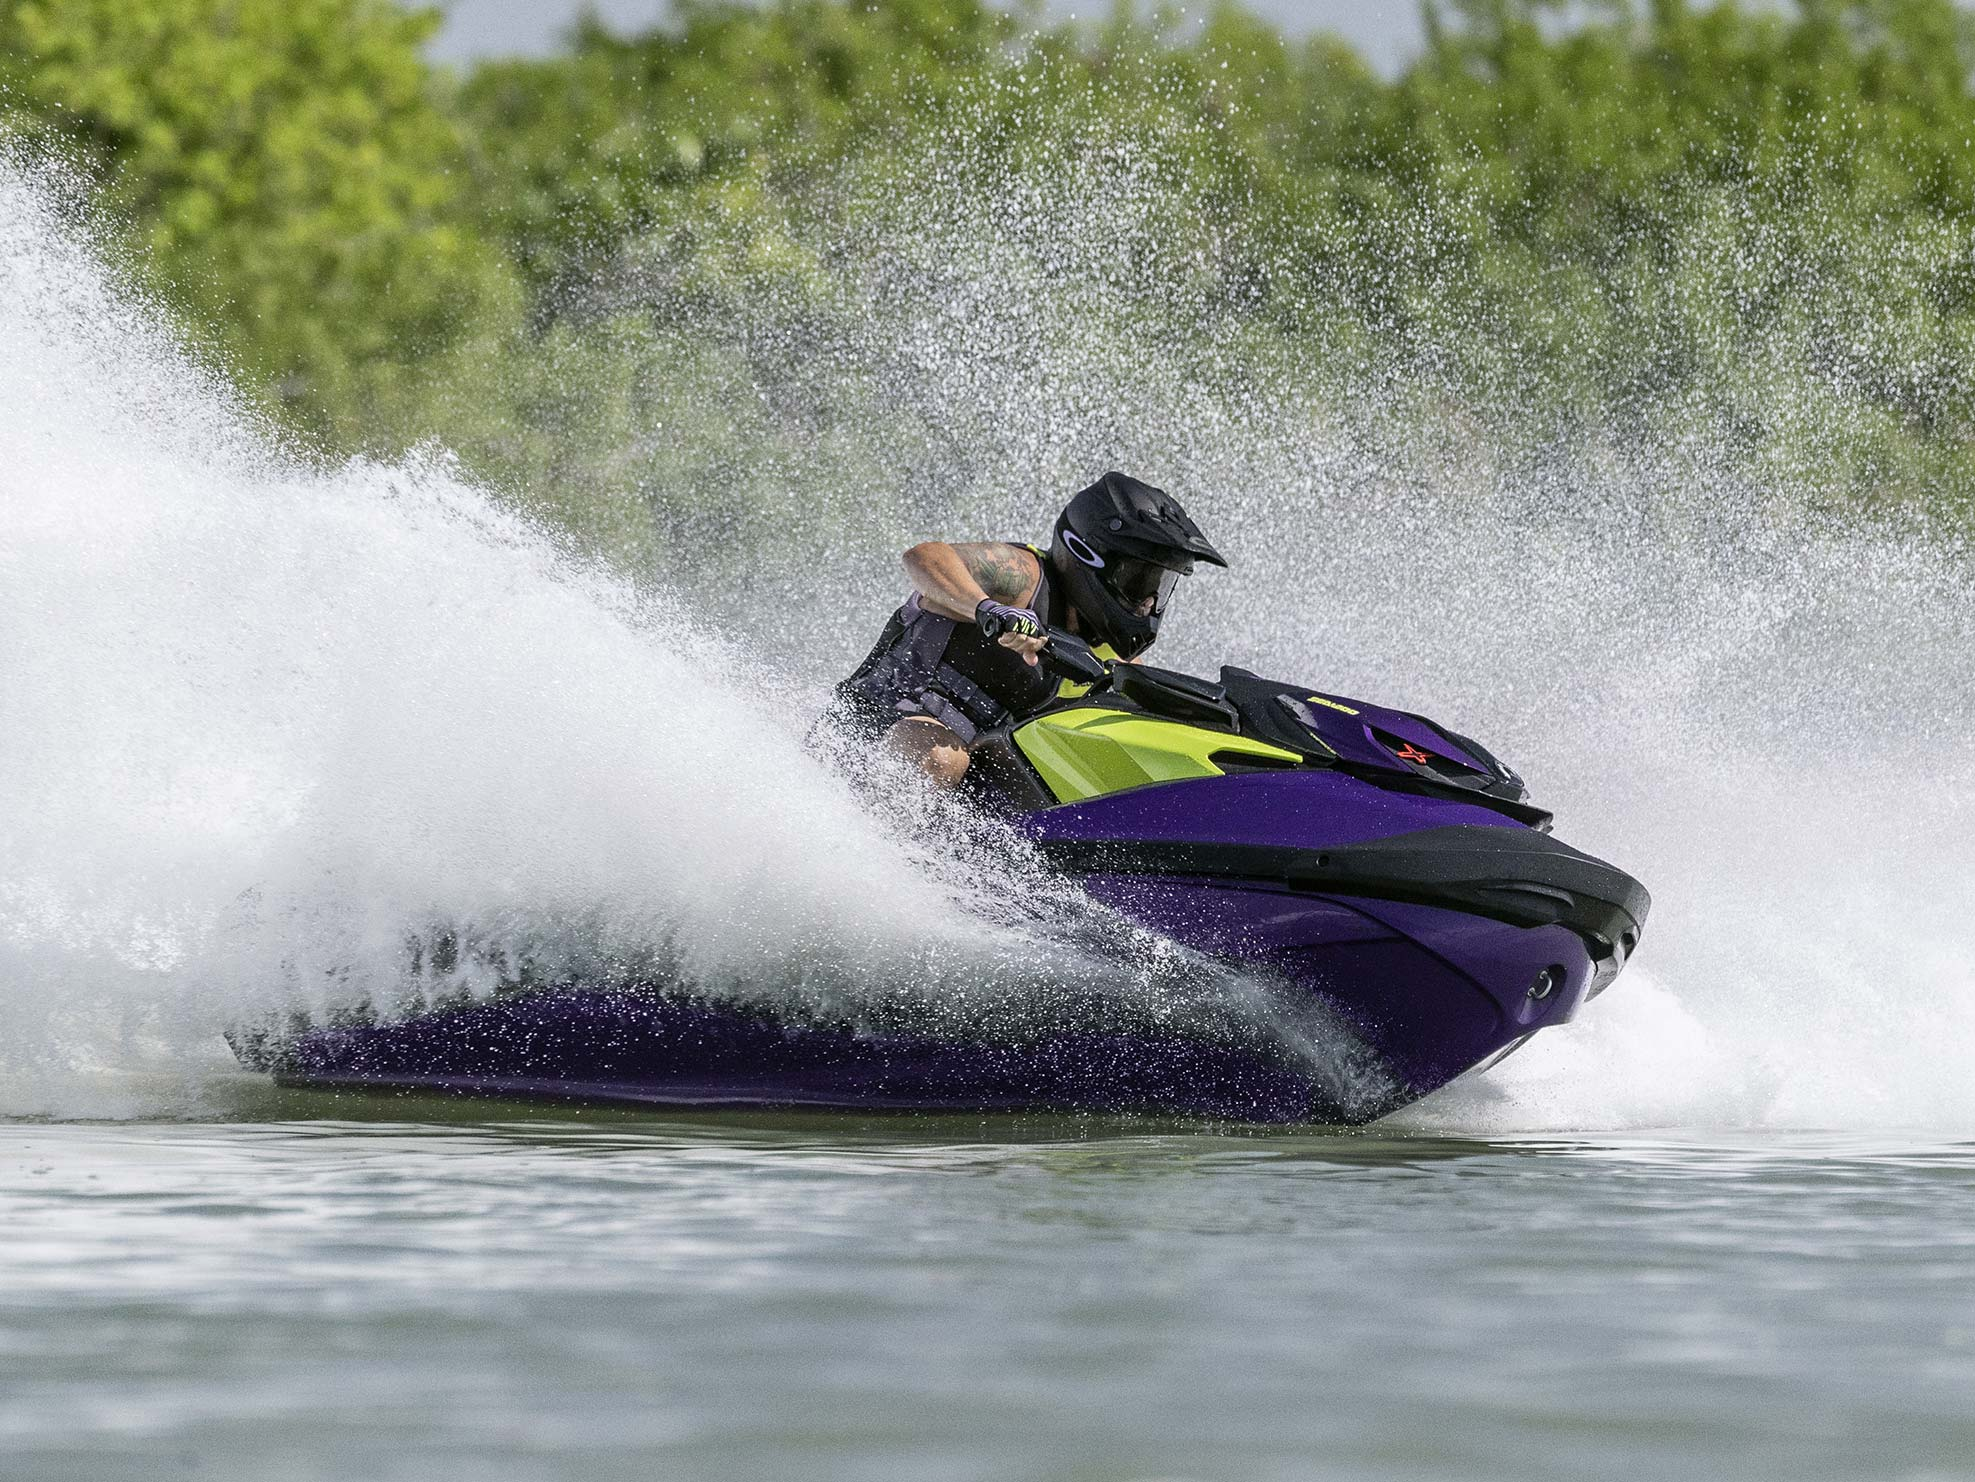 Man carving with a Sea-Doo on the water